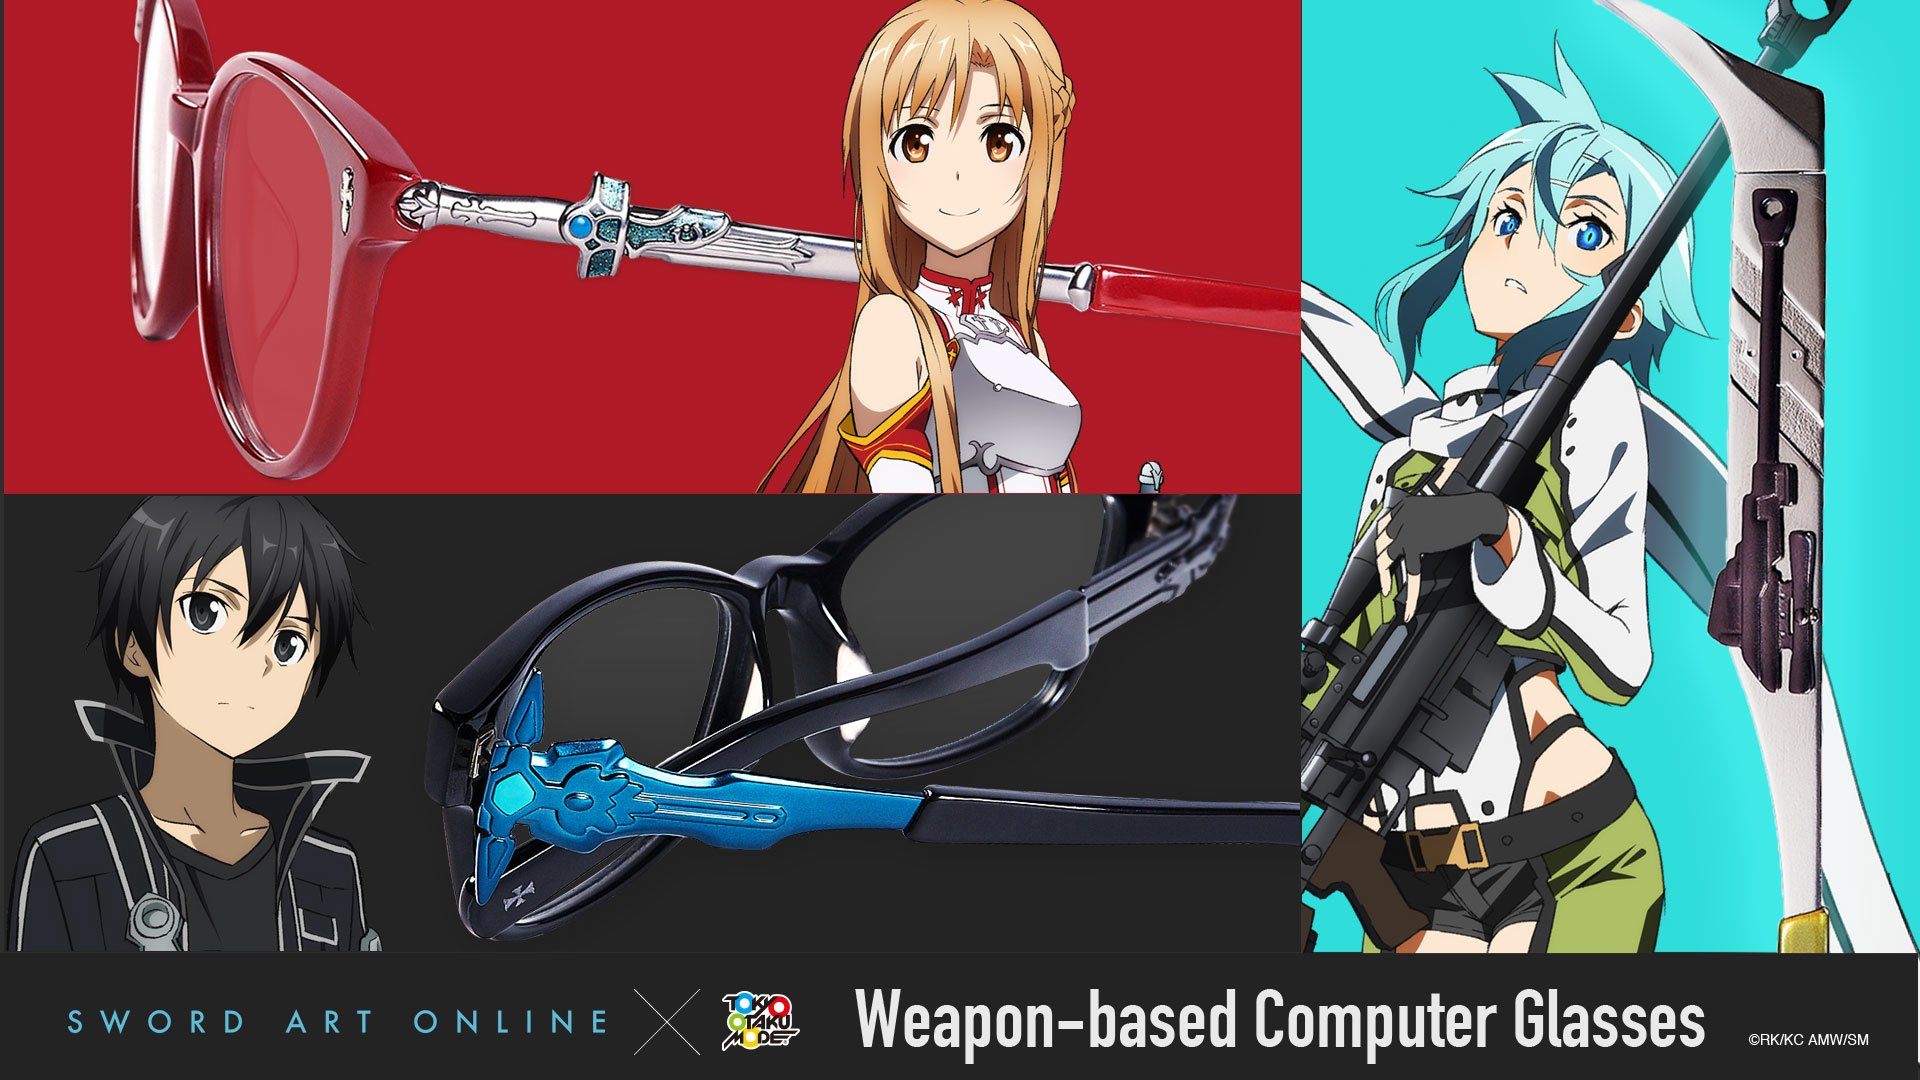 Sword Art Online Weapon-Based Computer Glasses